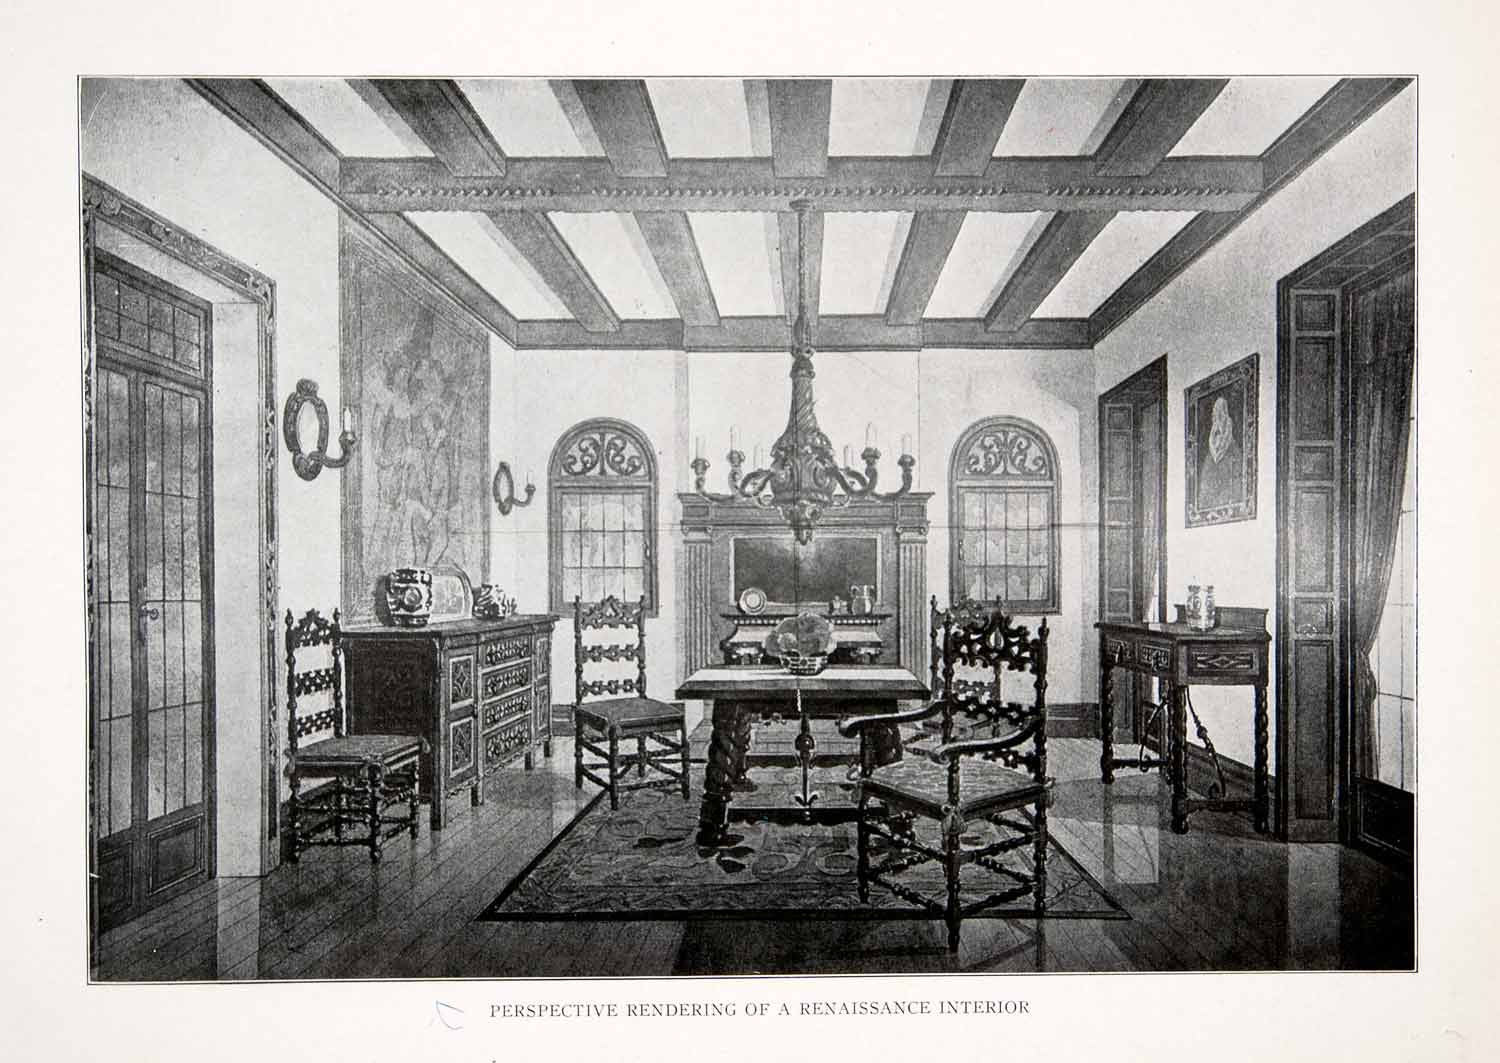 1925 Print Interior Renaissance Perspective Rendering Architecture Historic XDC5